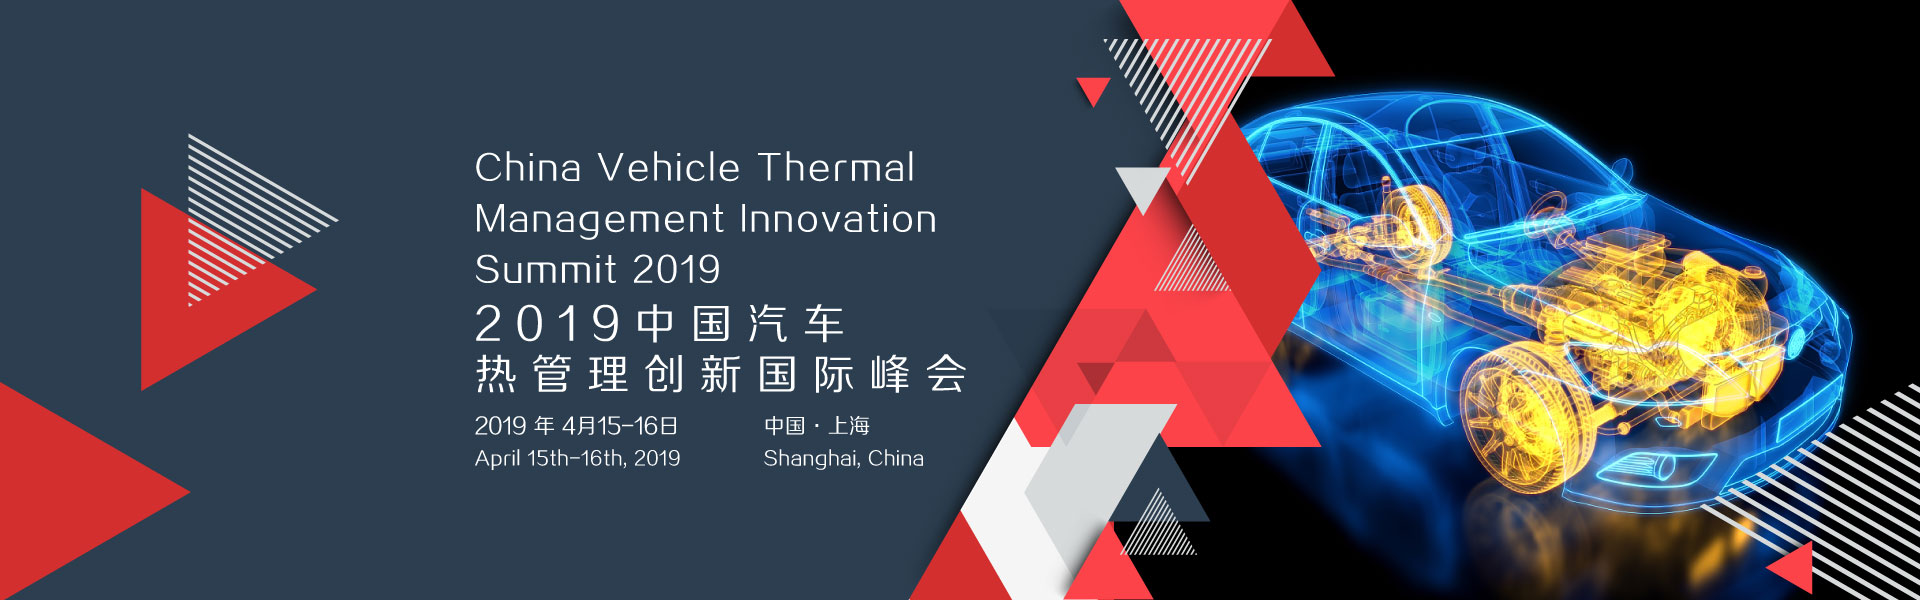 China Vehicle Thermal Management Innovation Summit 2019